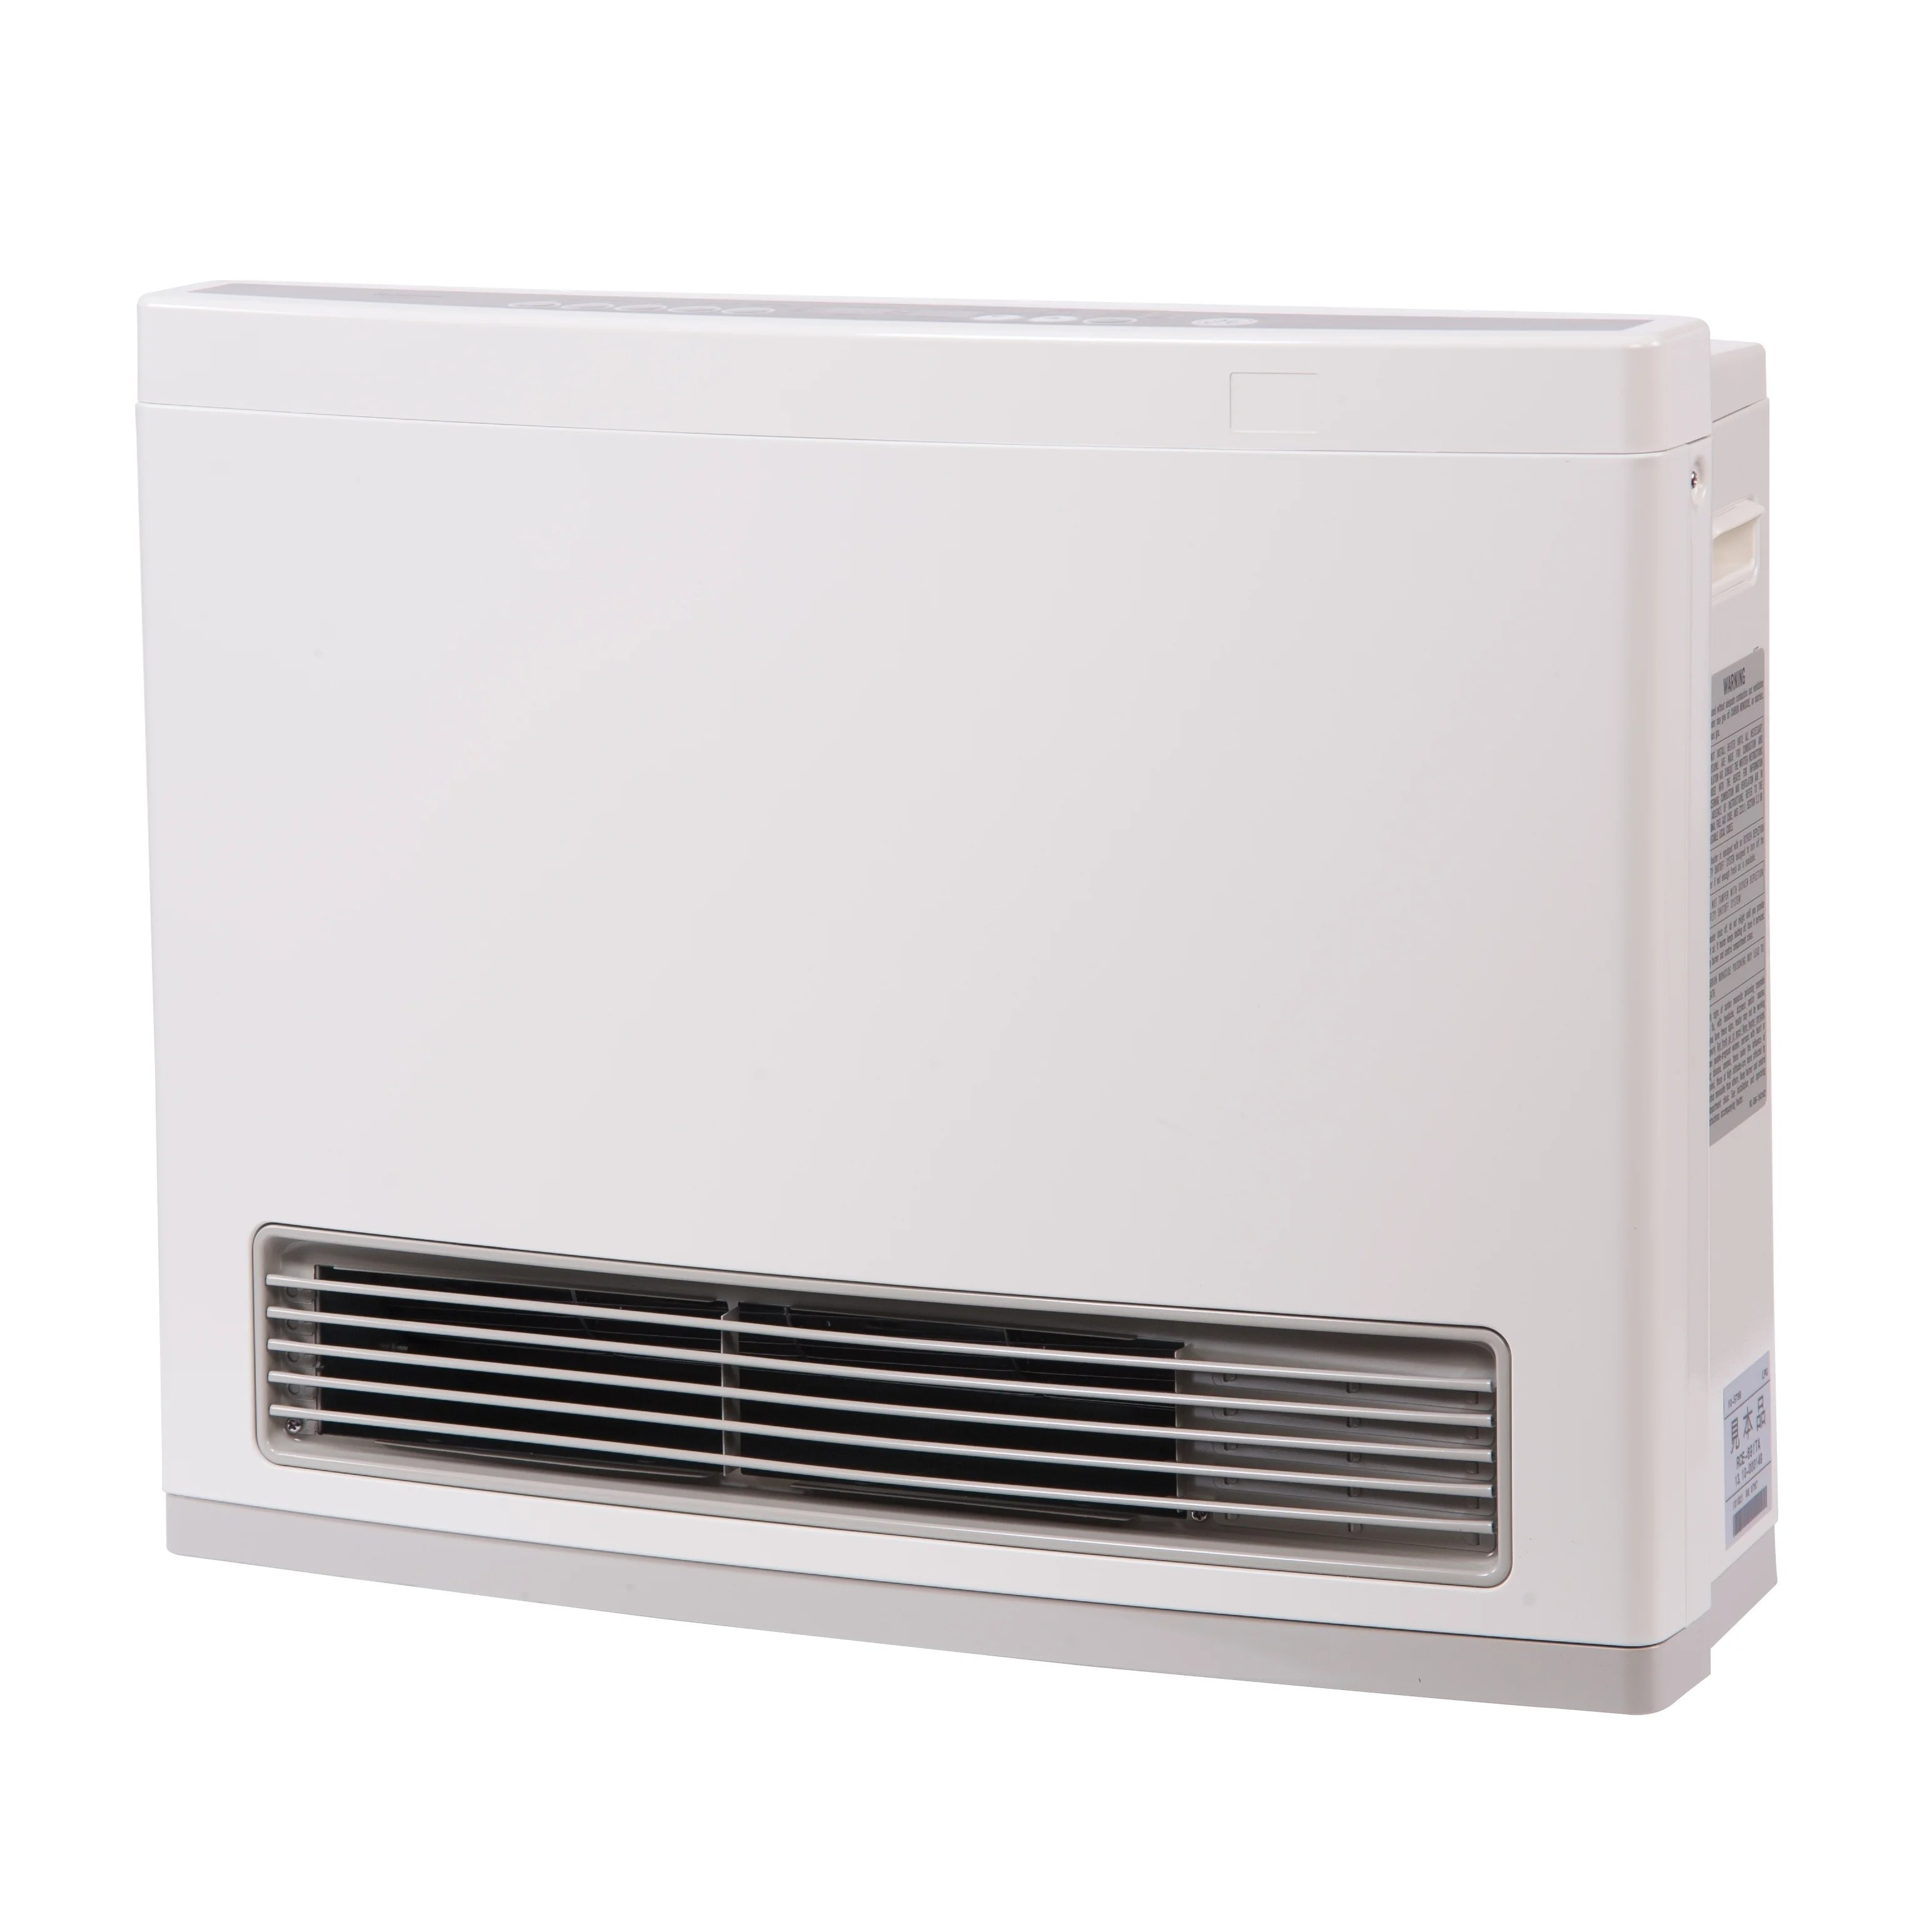 Electric Garage Heater Black Friday Buy Heaters Online At Overstock Our Best Heaters Fans Ac Deals